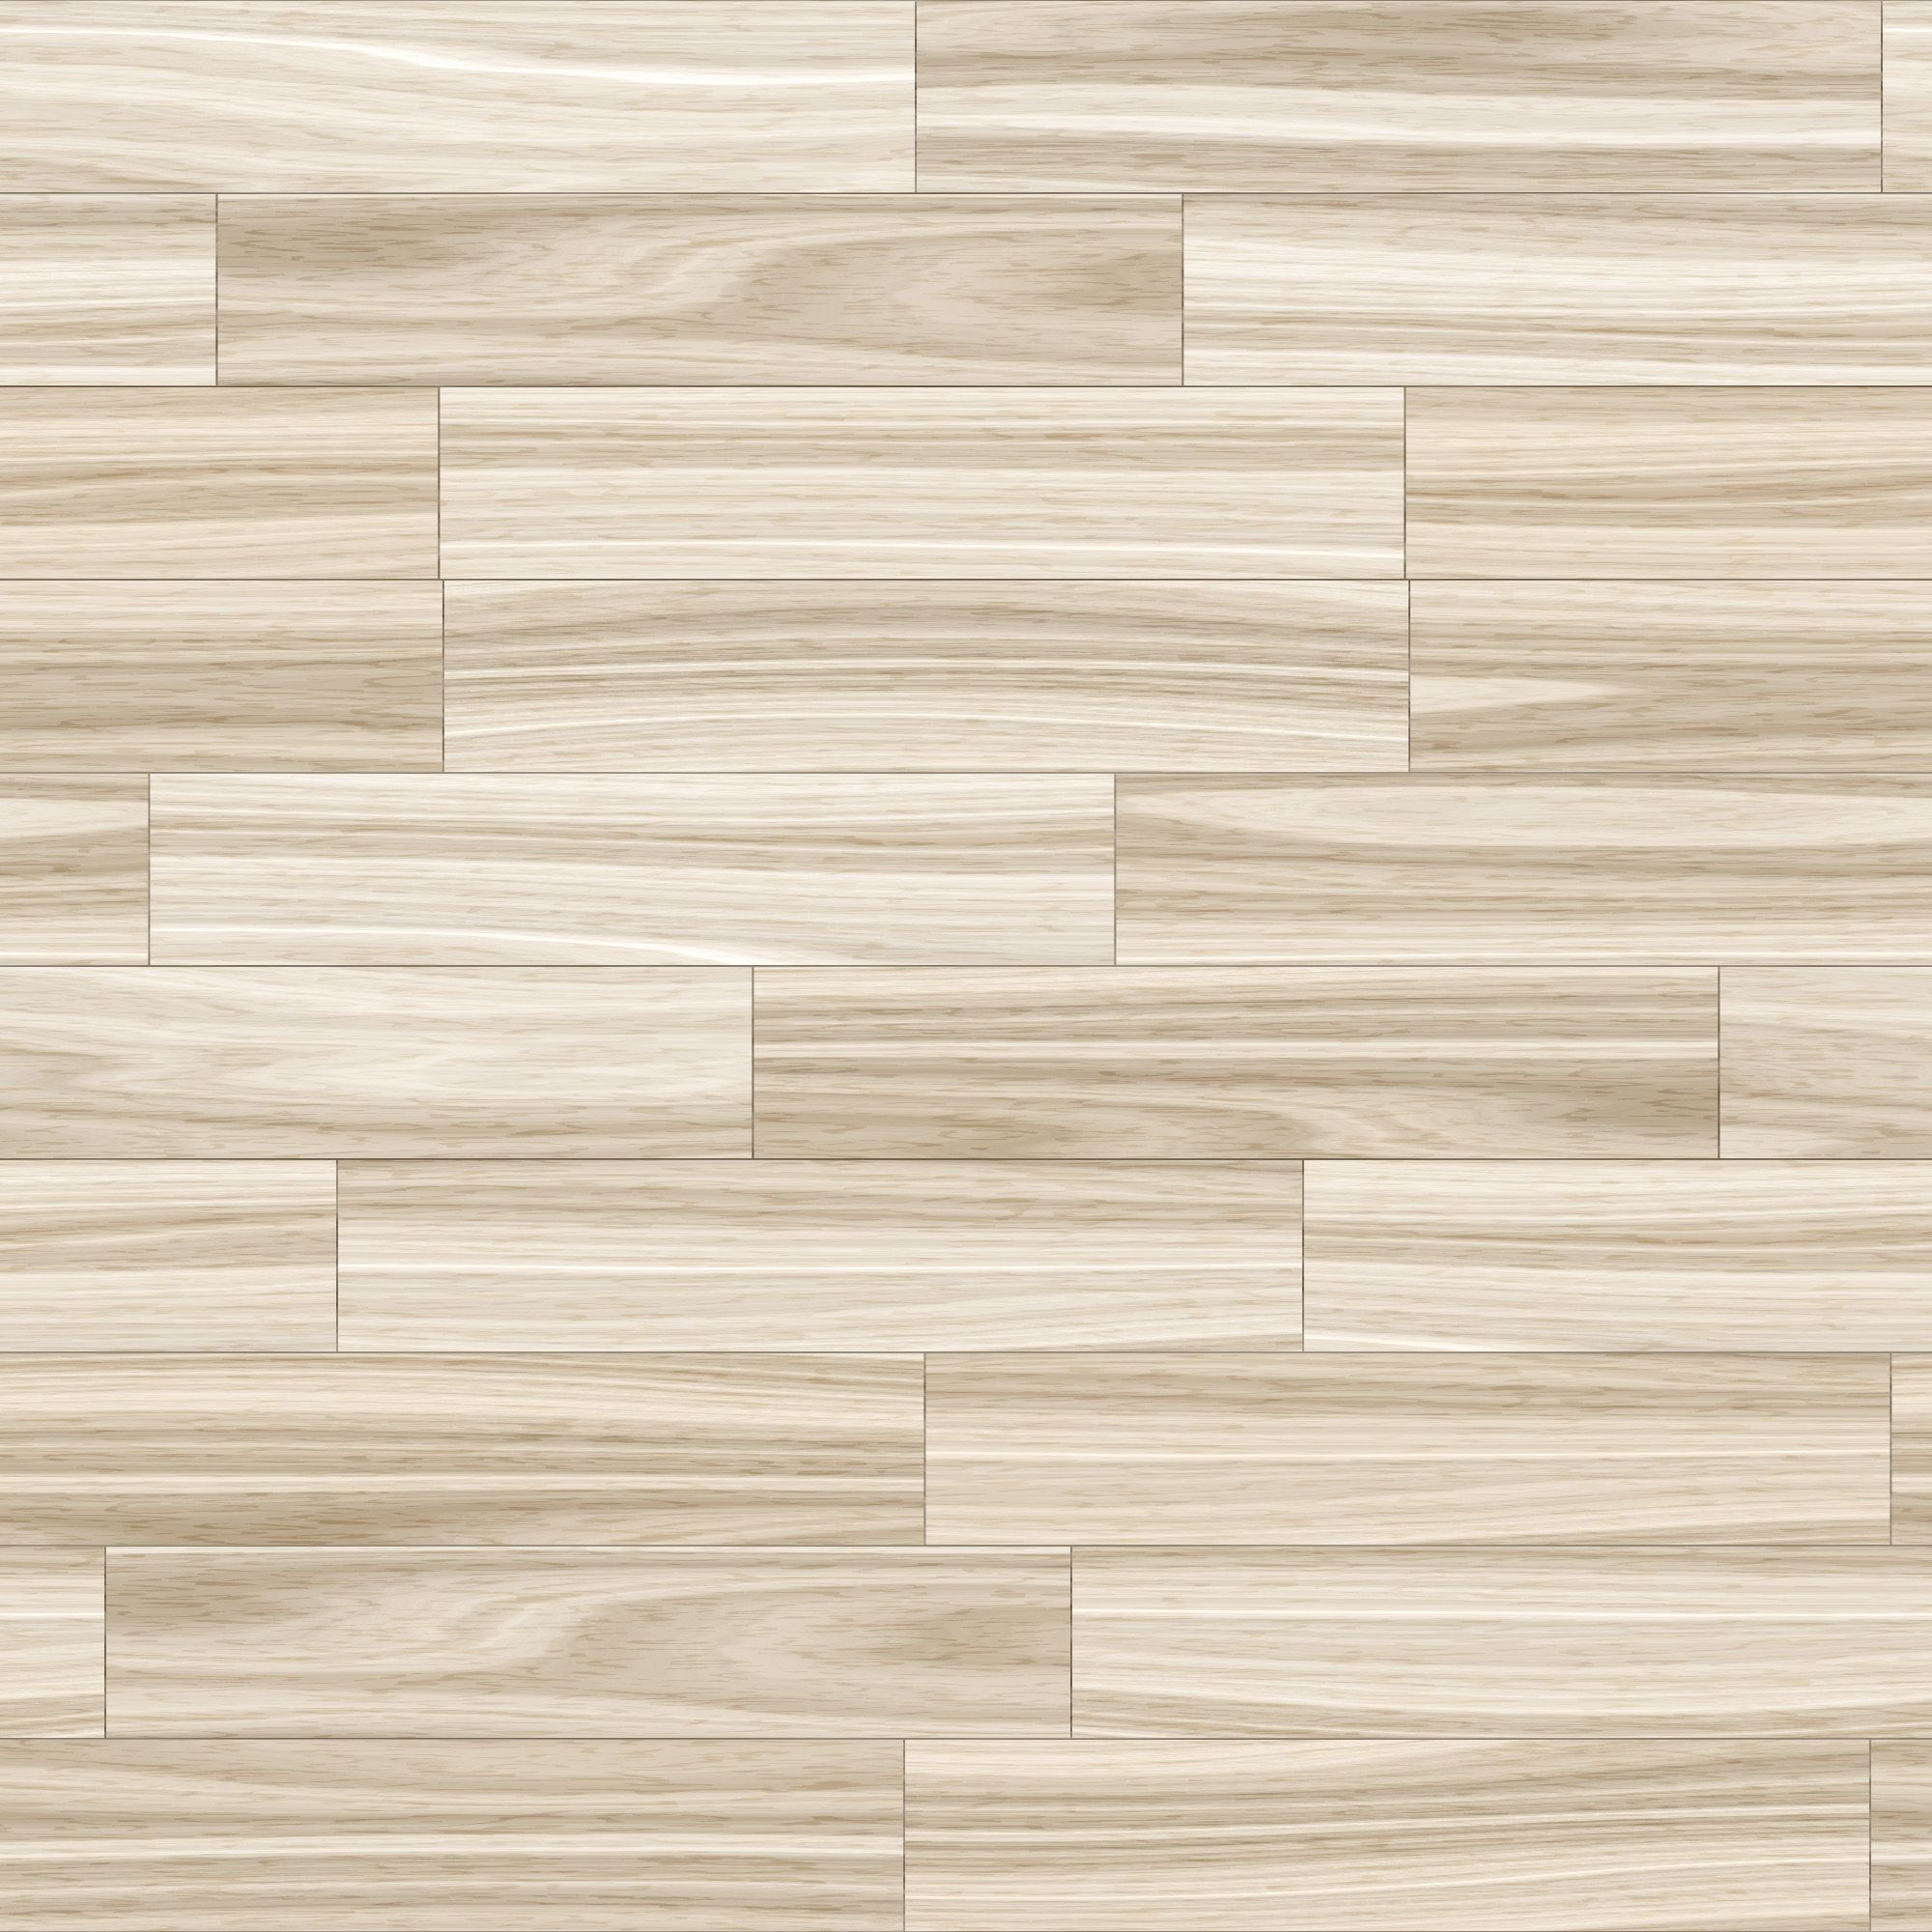 Grey brown seamless wooden flooring texture http www for Grey brown floor tiles